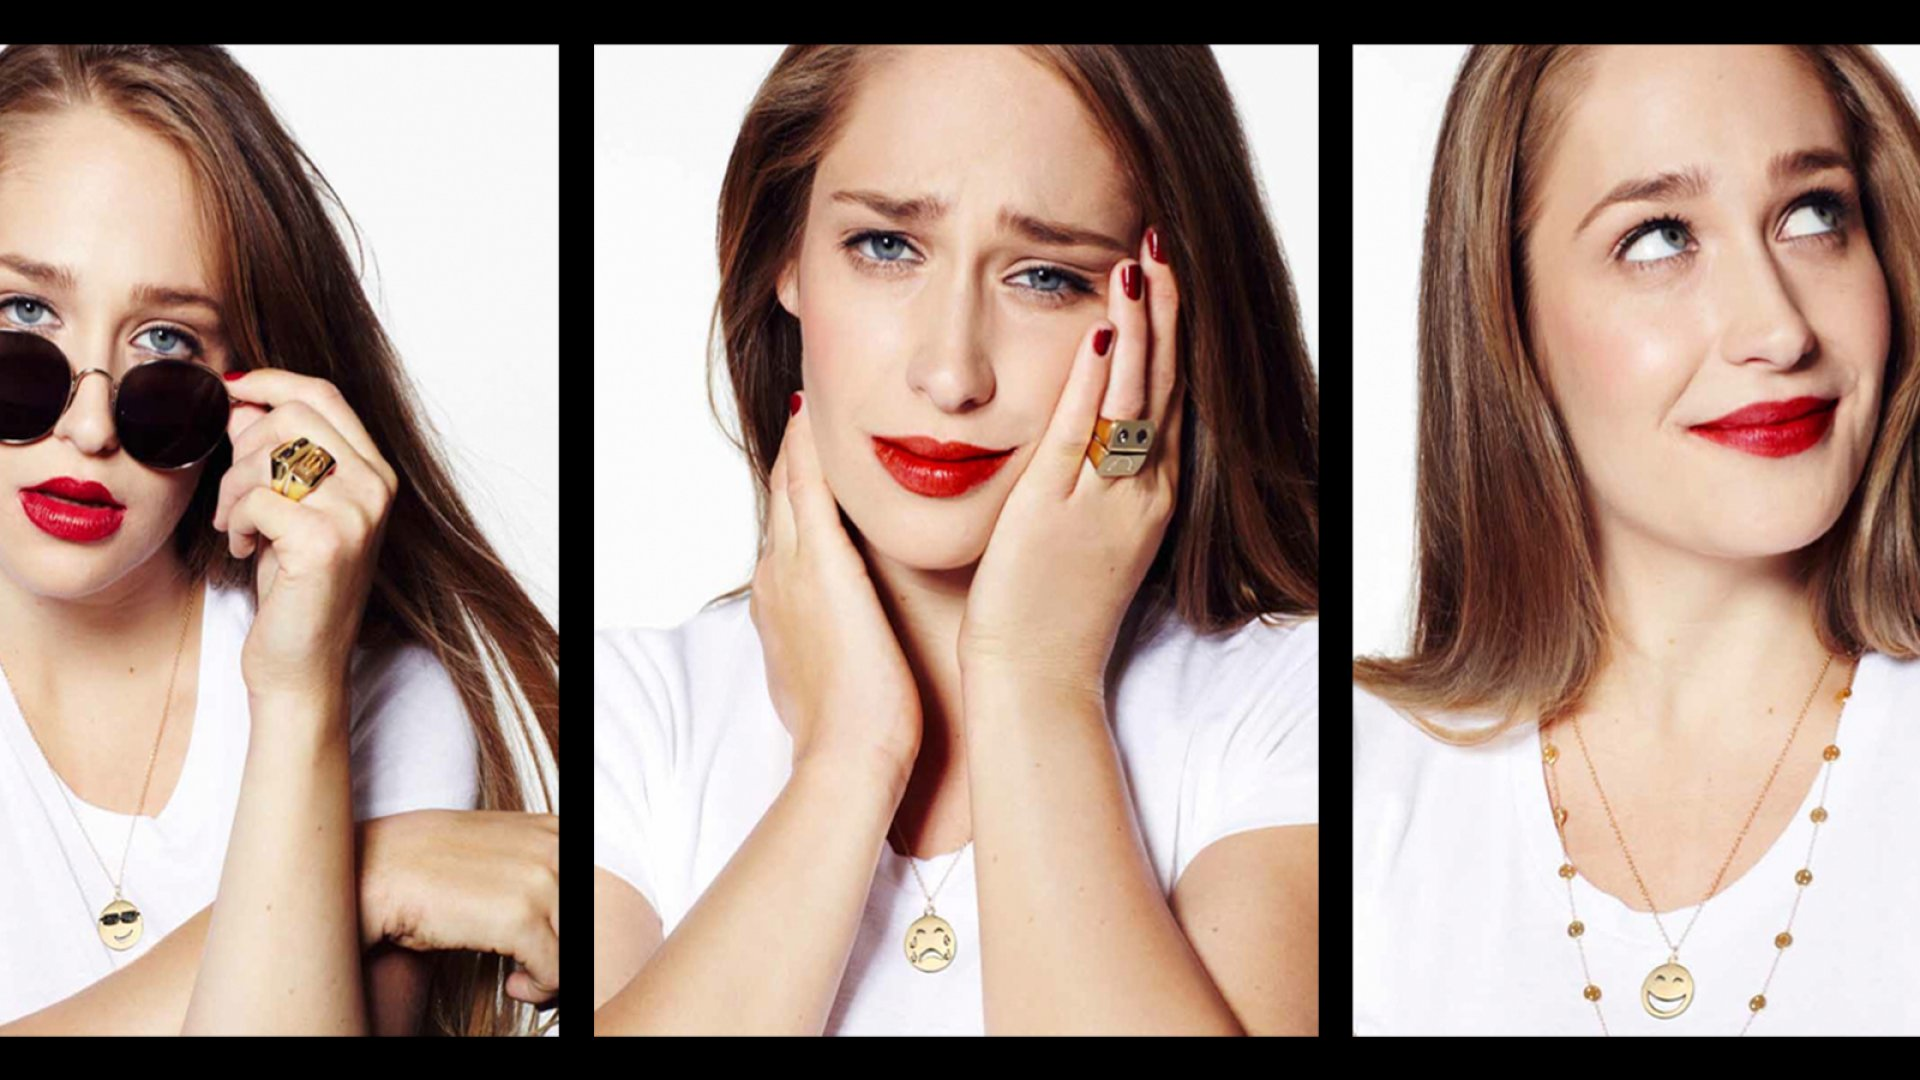 How This Designer Built a Million Dollar Business Selling Emoticon Jewelry